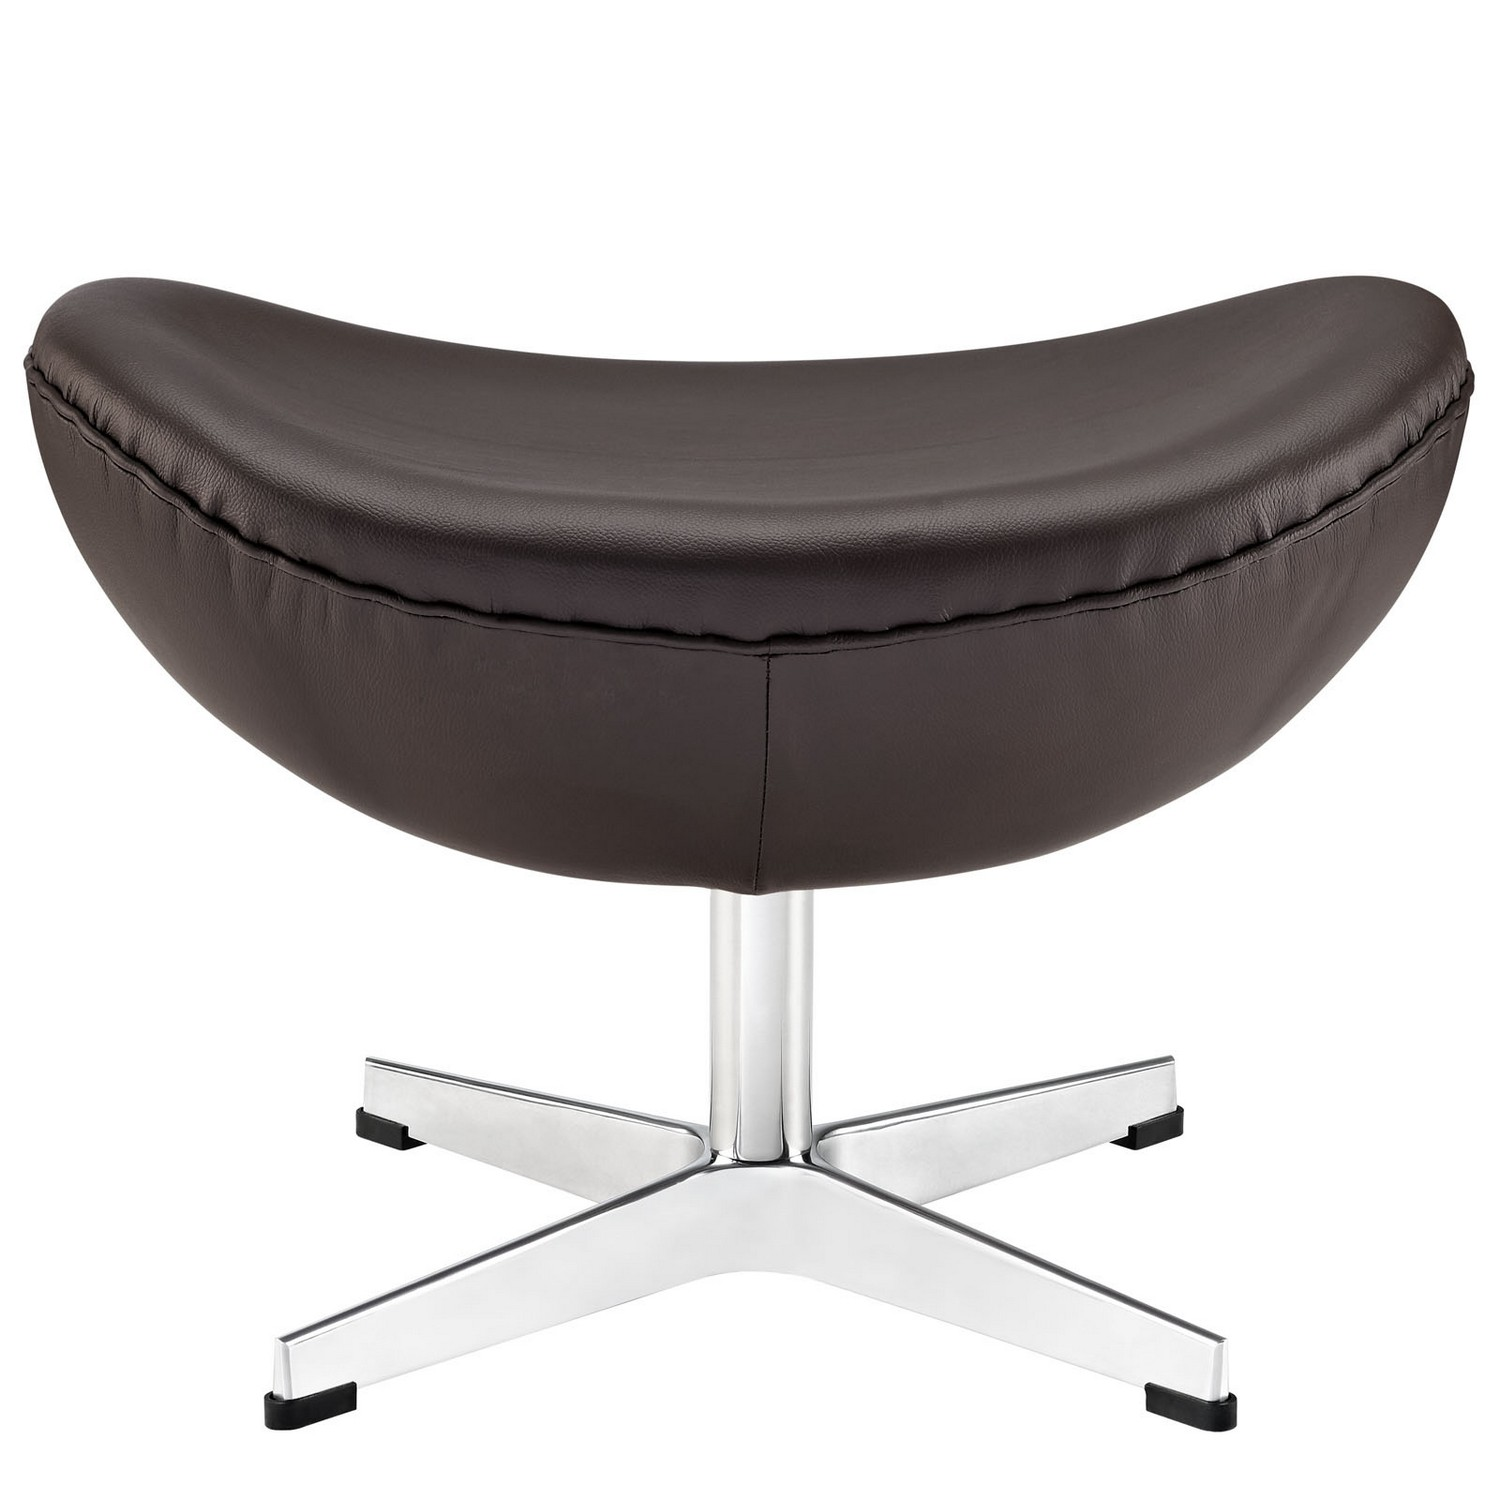 Modway Glove Leather Ottoman - Brown